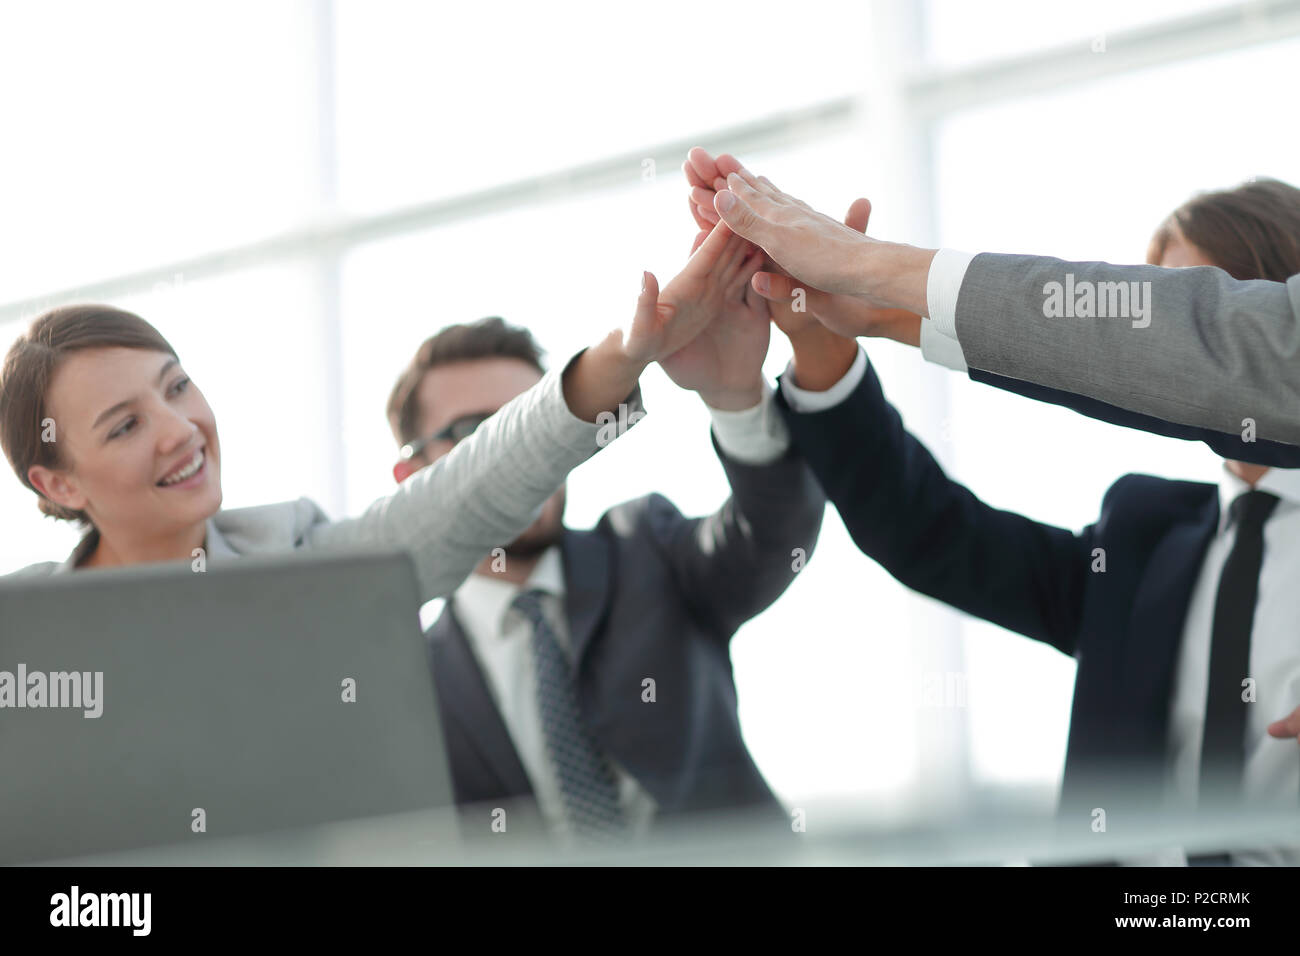 success and victory .the concept of teamwork. - Stock Image